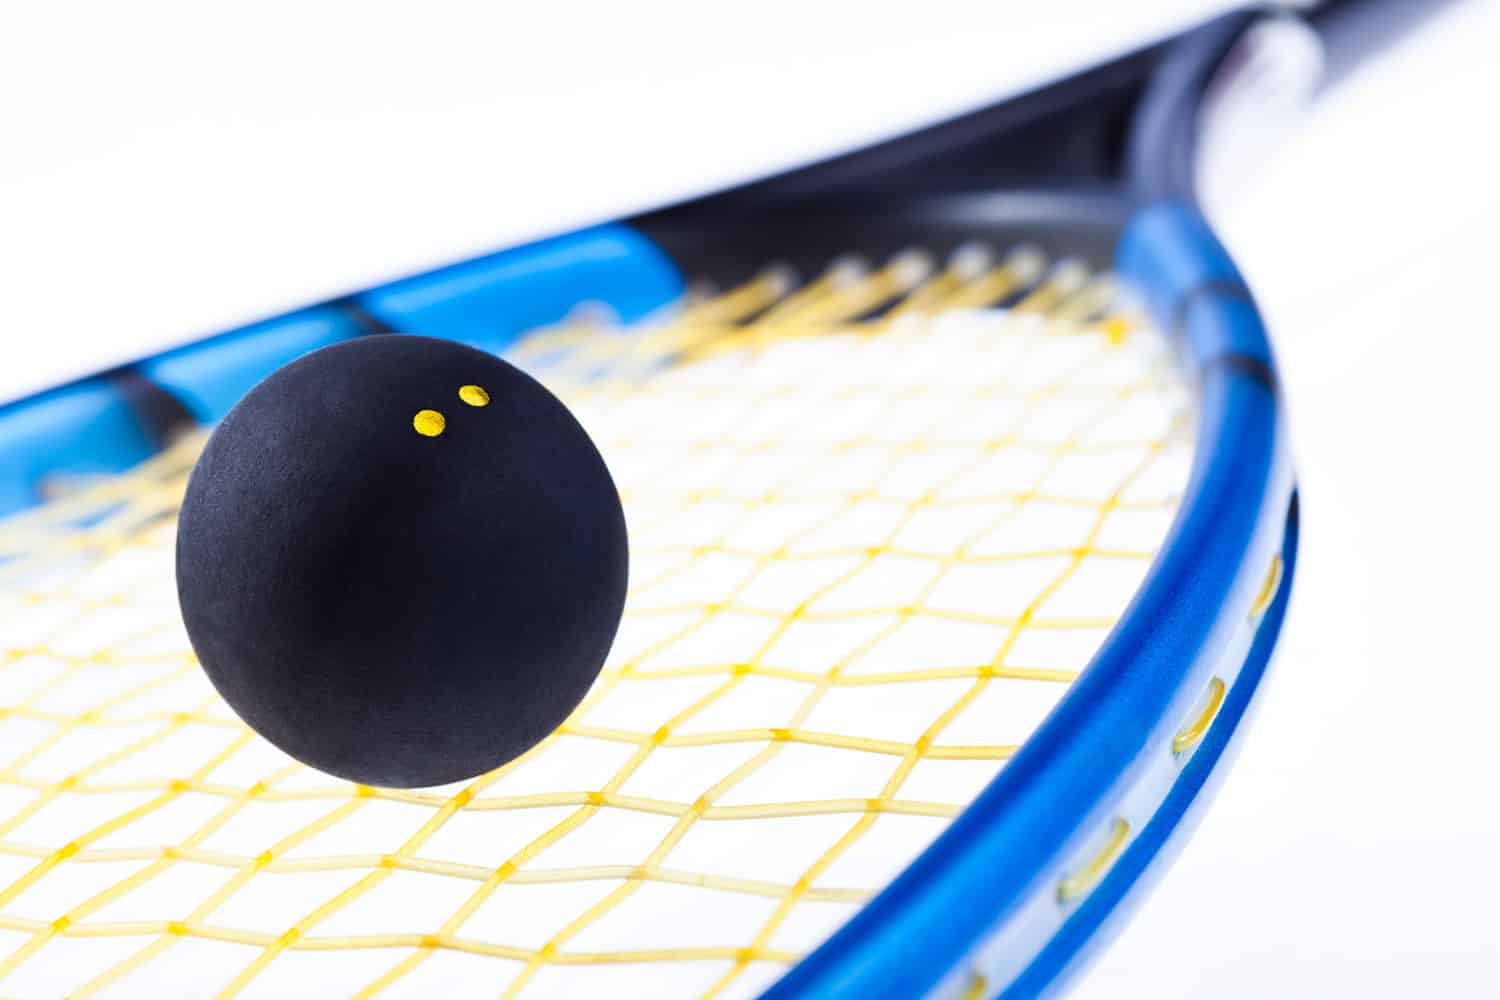 An up close photo of a squash ball hitting the racket